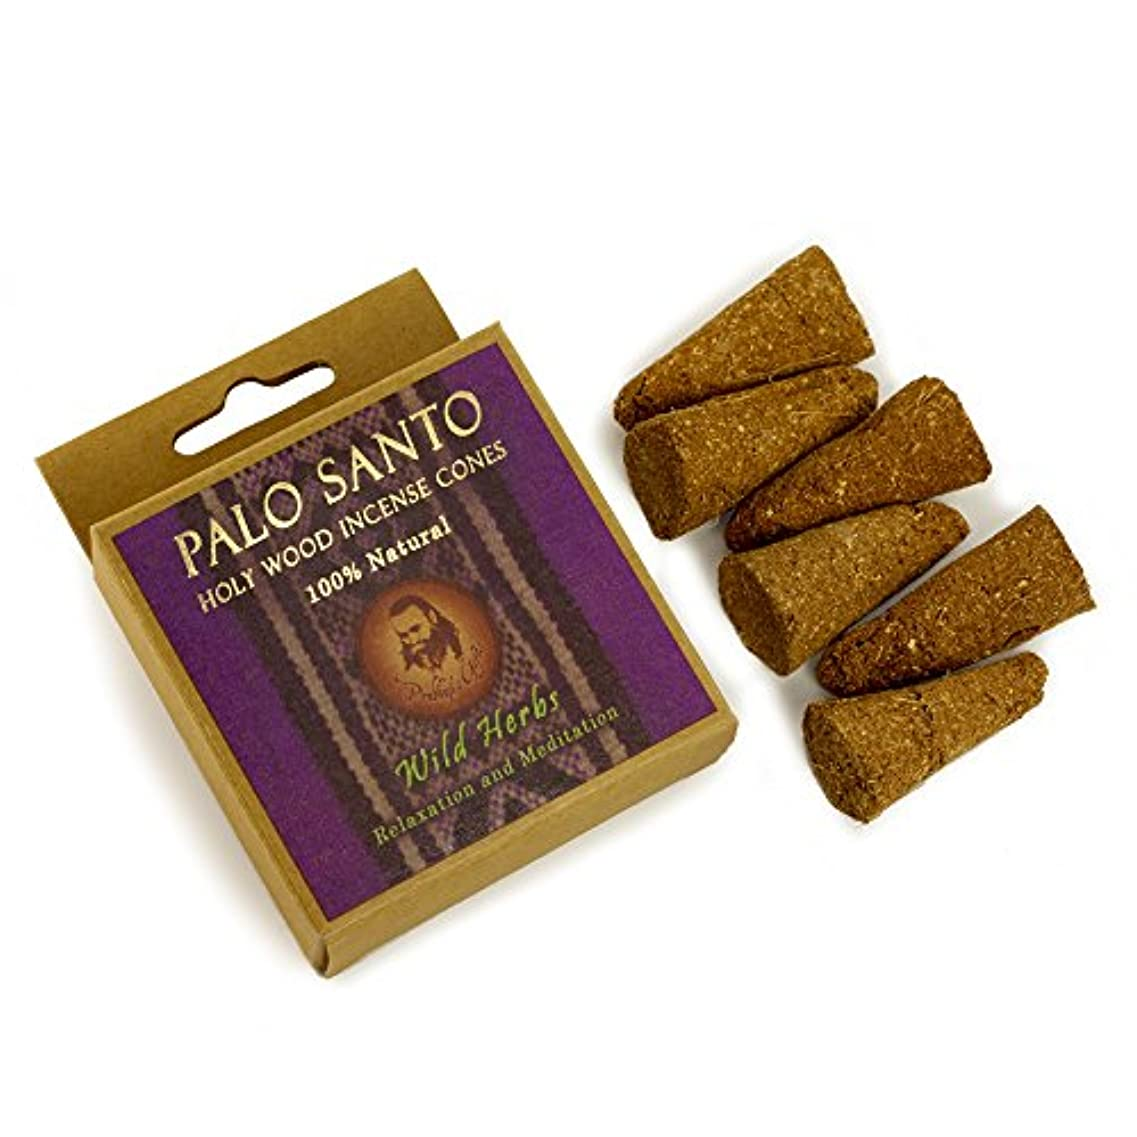 女優夢中これらPalo Santo and Wild herbs – Relaxation &瞑想 – 6 Incense Cones